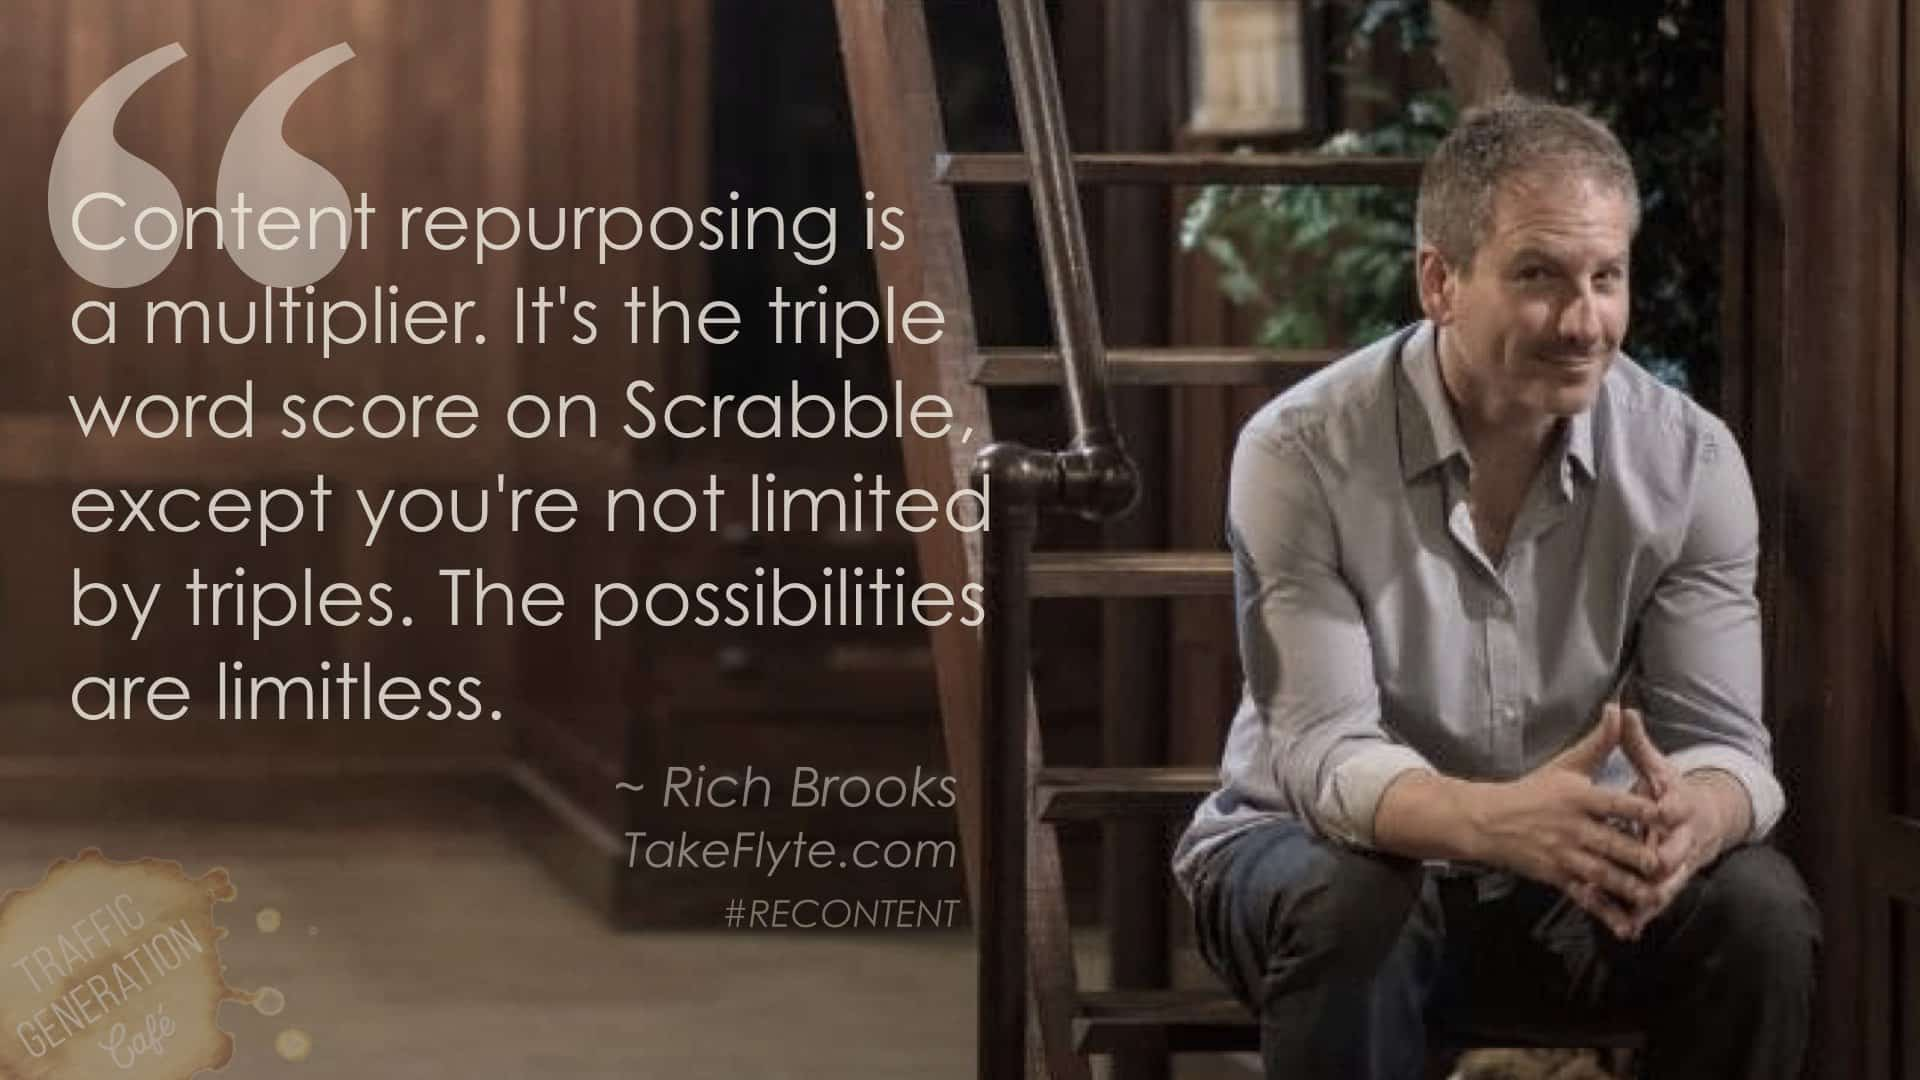 content repurposing by Rich Brooks